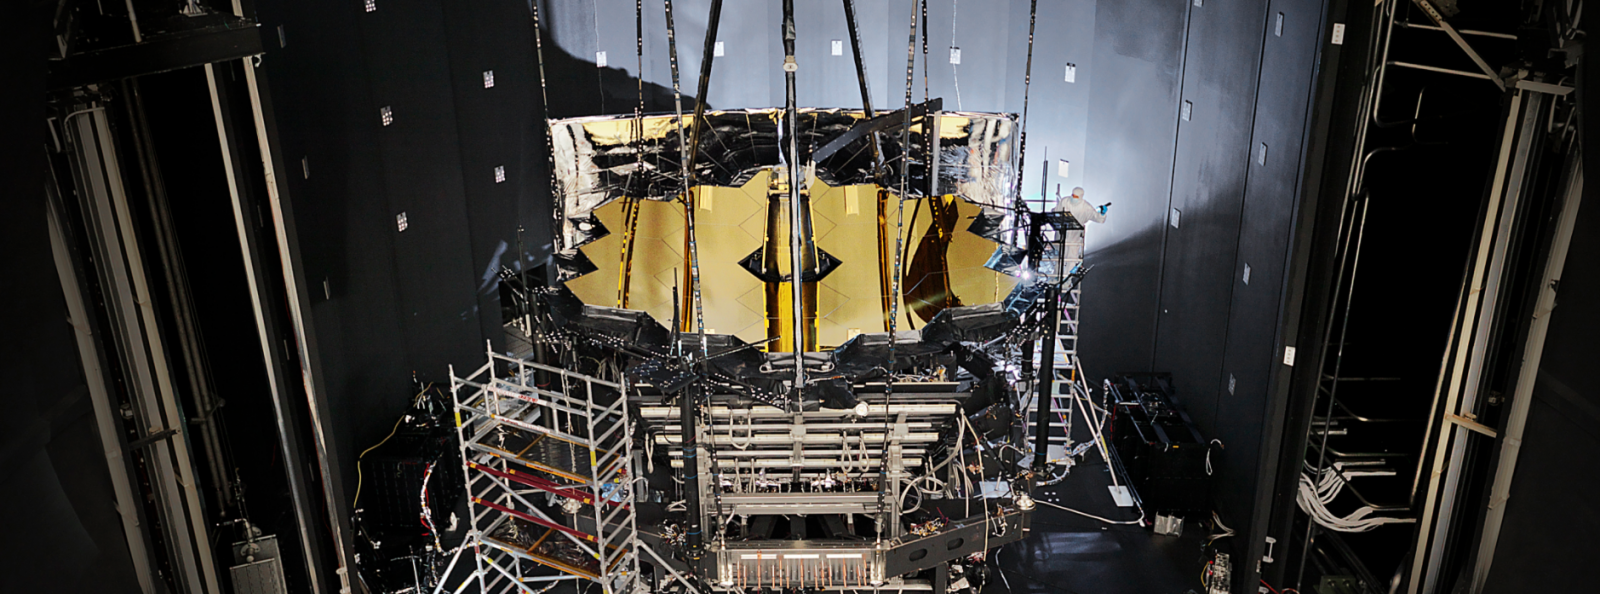 The James Webb Space Telescope underwent testing in space-like conditions at Johnson Space Center. Photo Credit: NASA